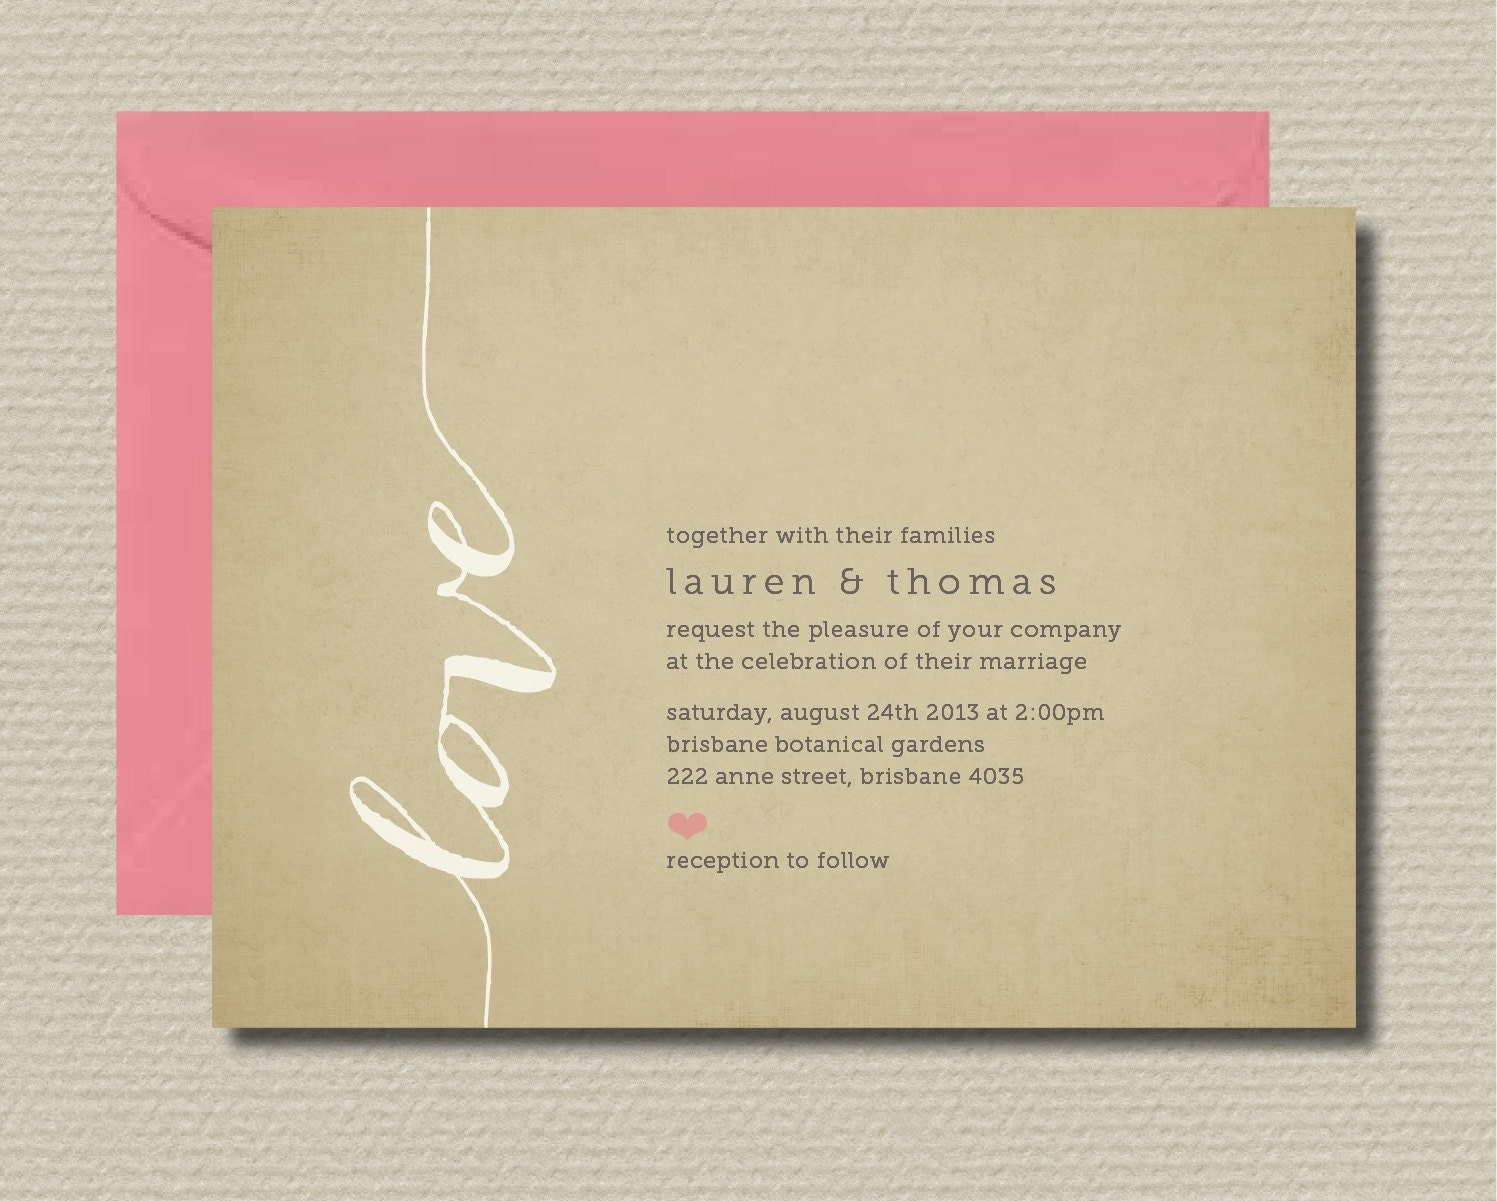 rsvp wedding invites - Etame.mibawa.co